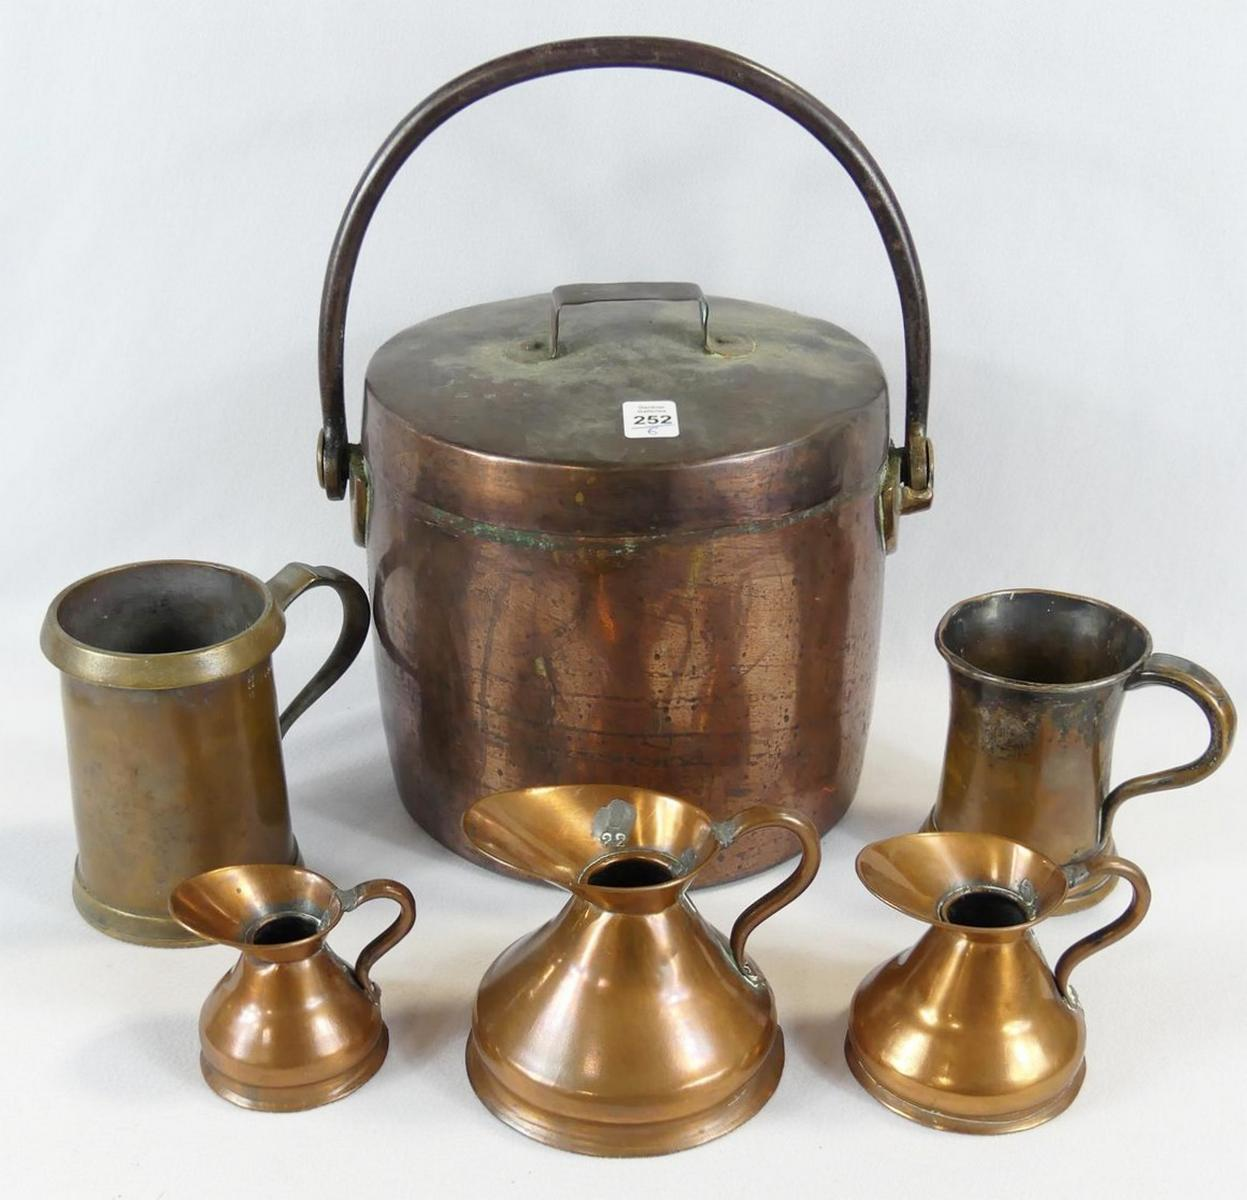 SIX PIECES OF COPPER